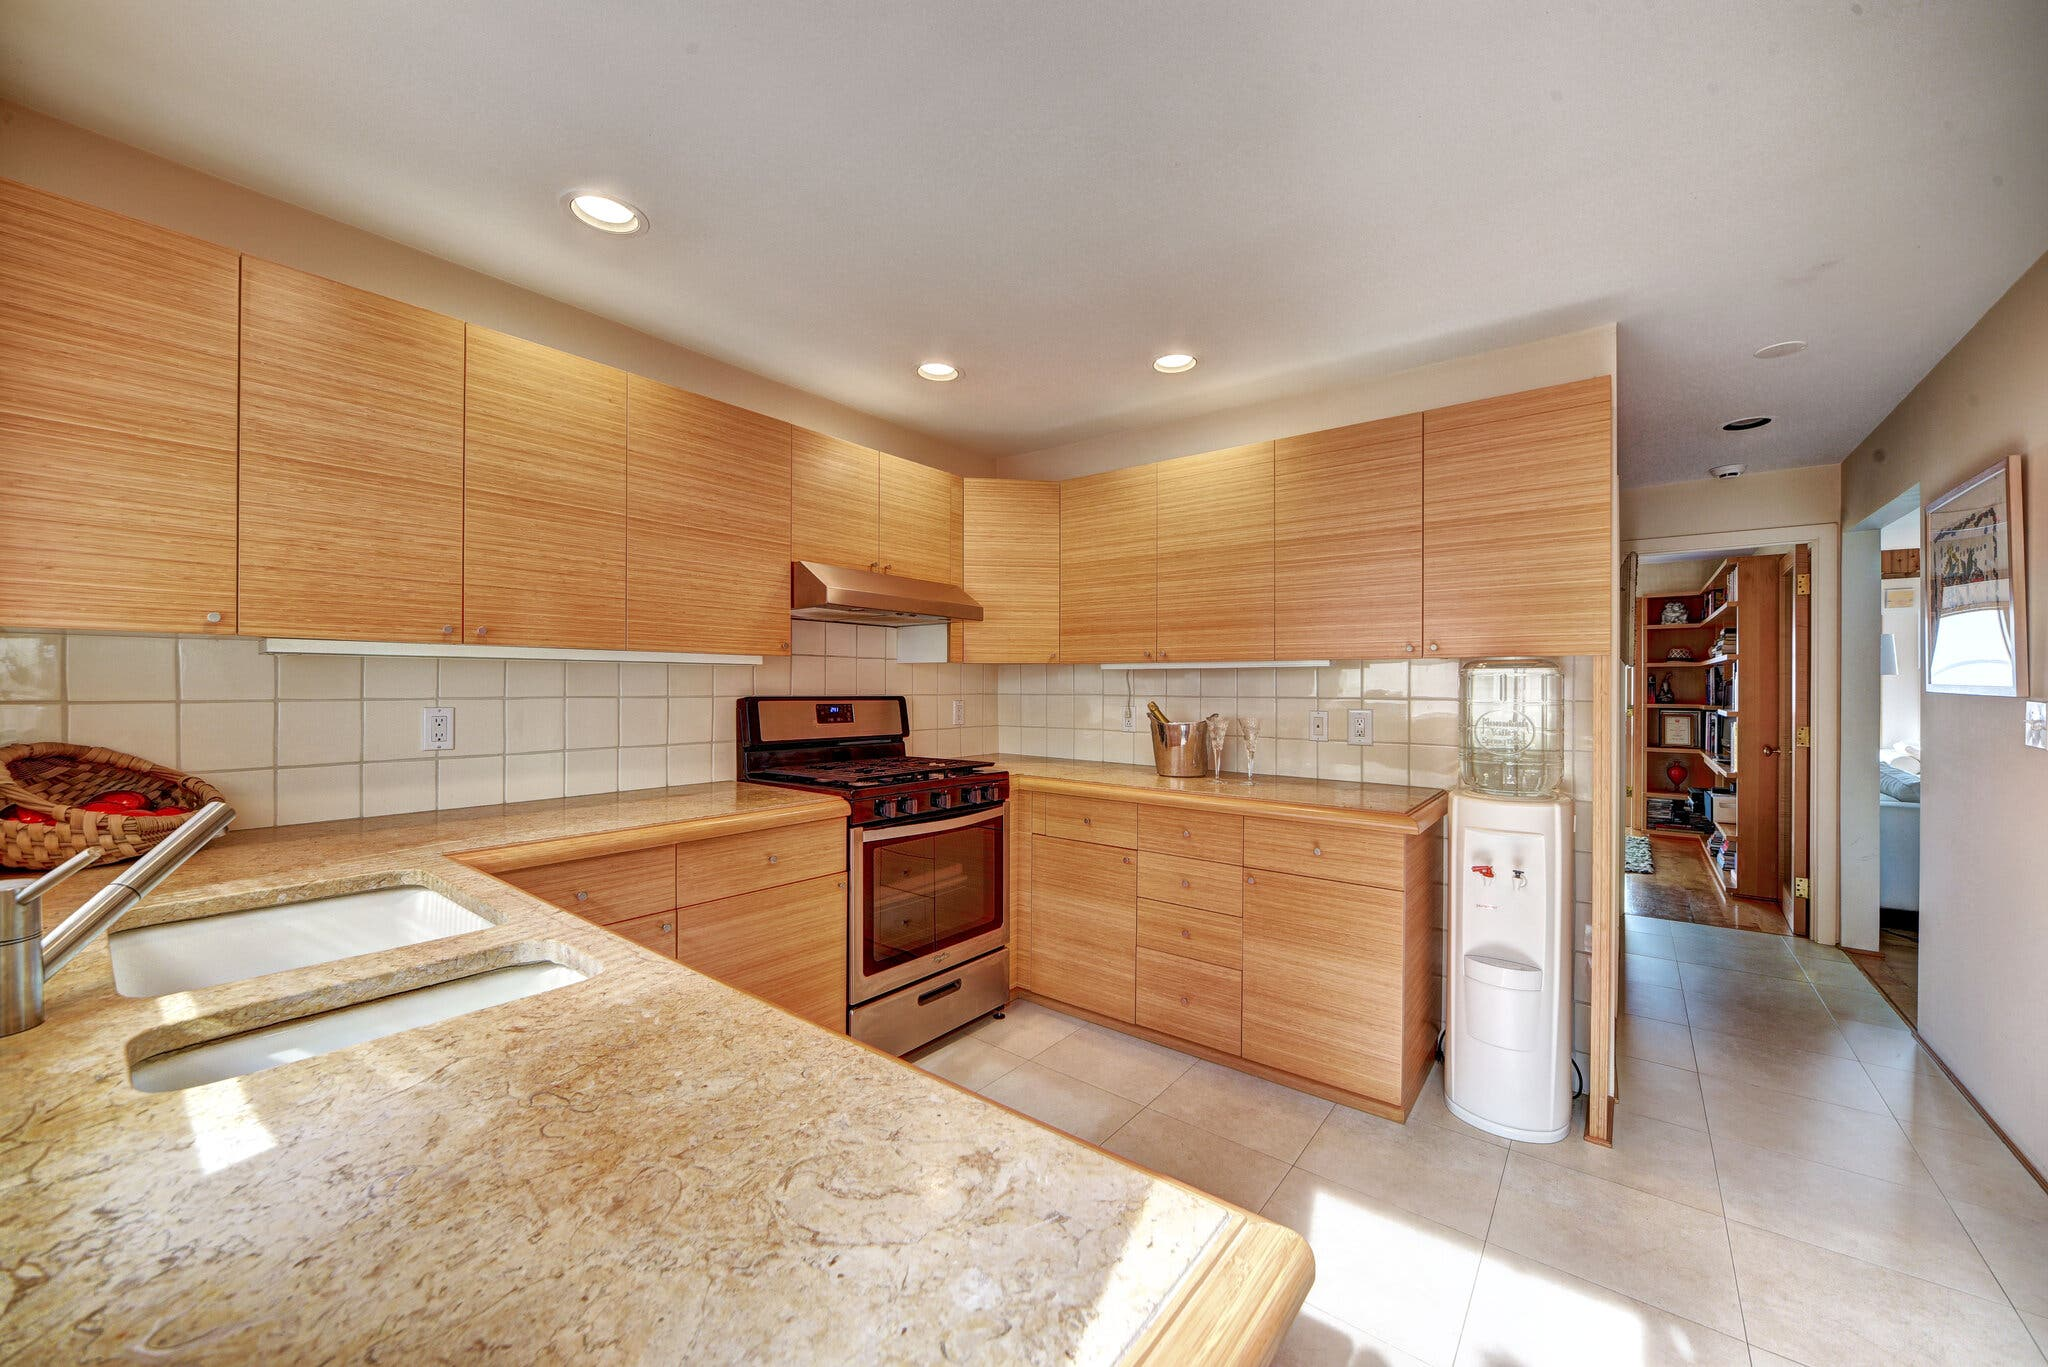 Cocina / Chris Foster for Sotheby's International Realty